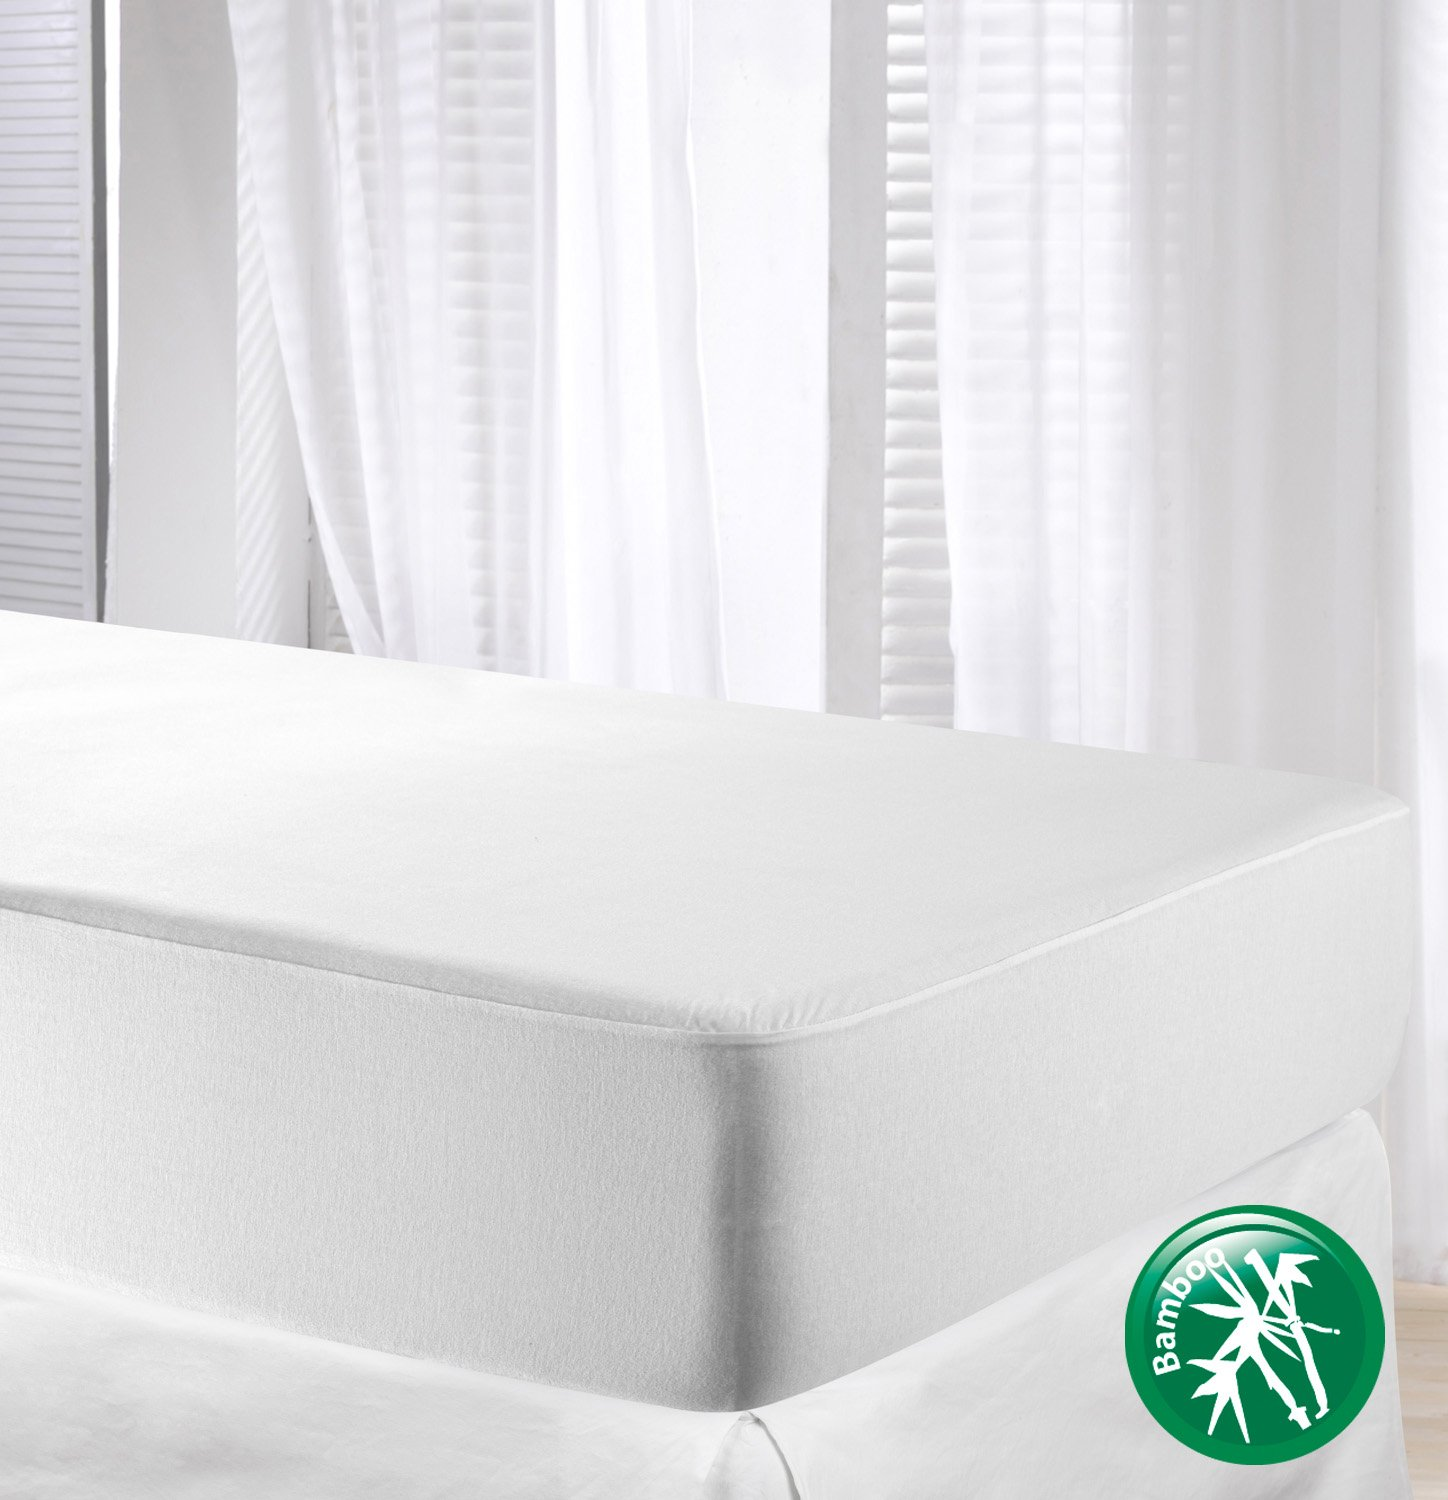 Velfont Bamboo Waterproof and Breathable Mattress Protector / Knitted  Bamboo, Single Size (90x190/200cm): Amazon.co.uk: Kitchen & Home